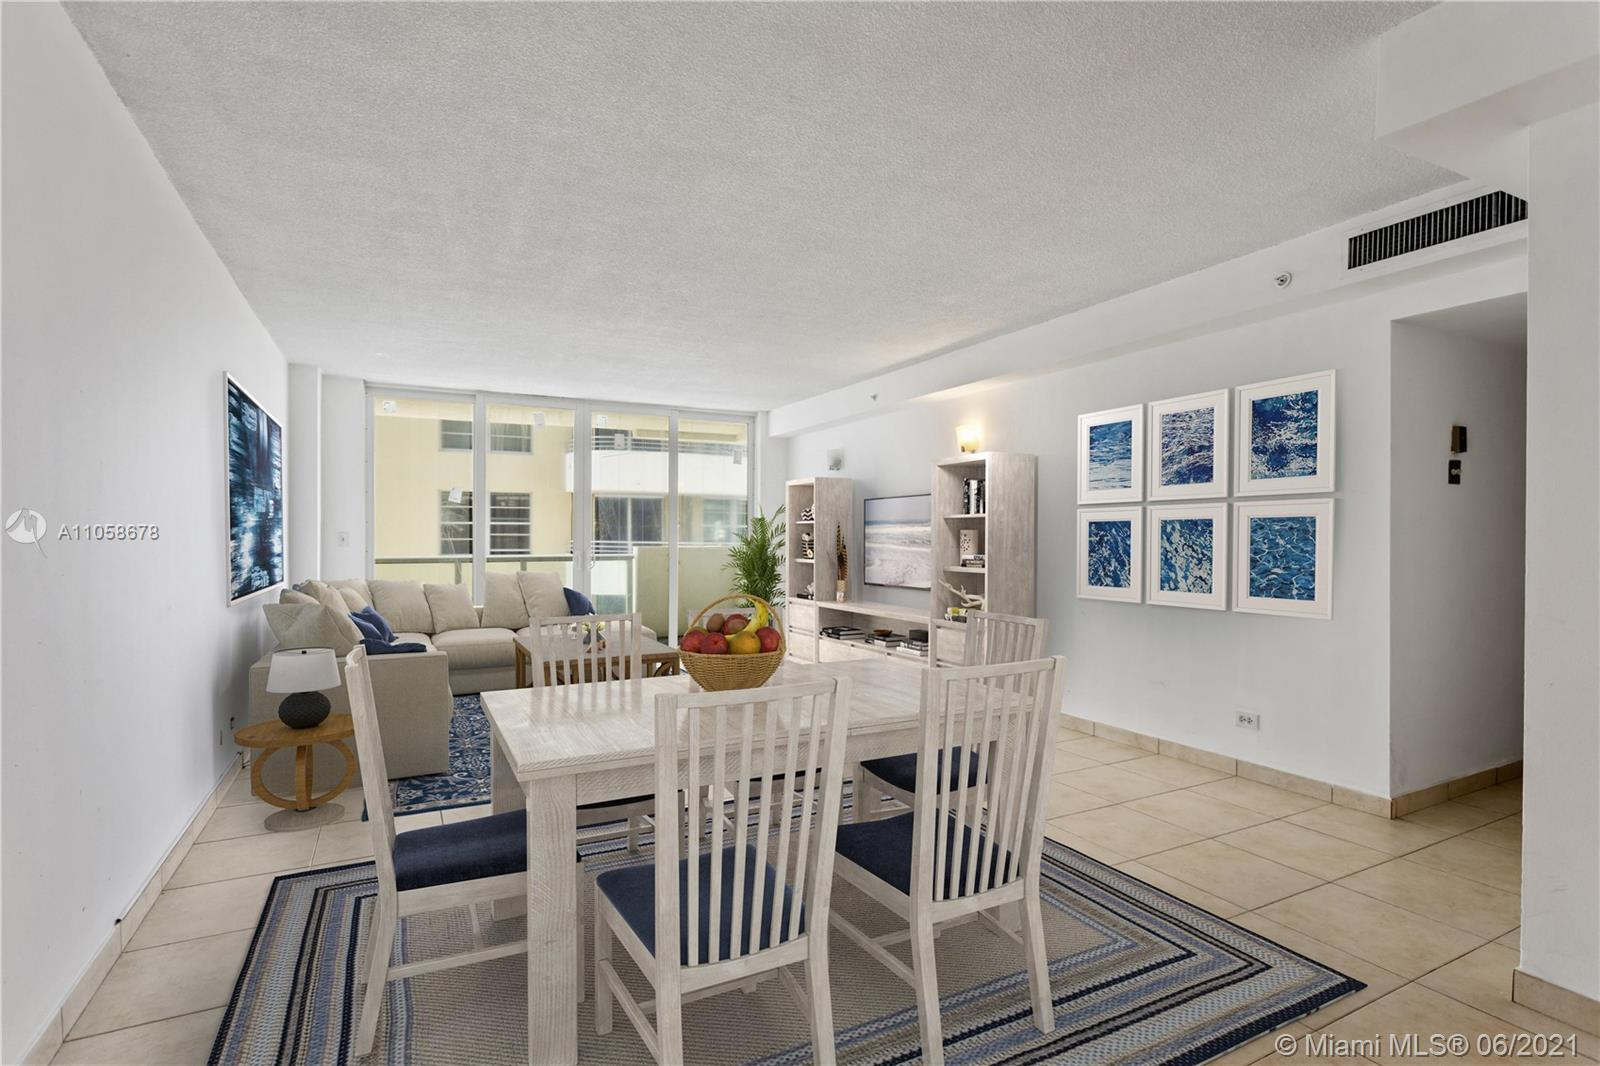 Live on Millionaire's row in an ocean front building with beach access at the Pavilion.  Large main